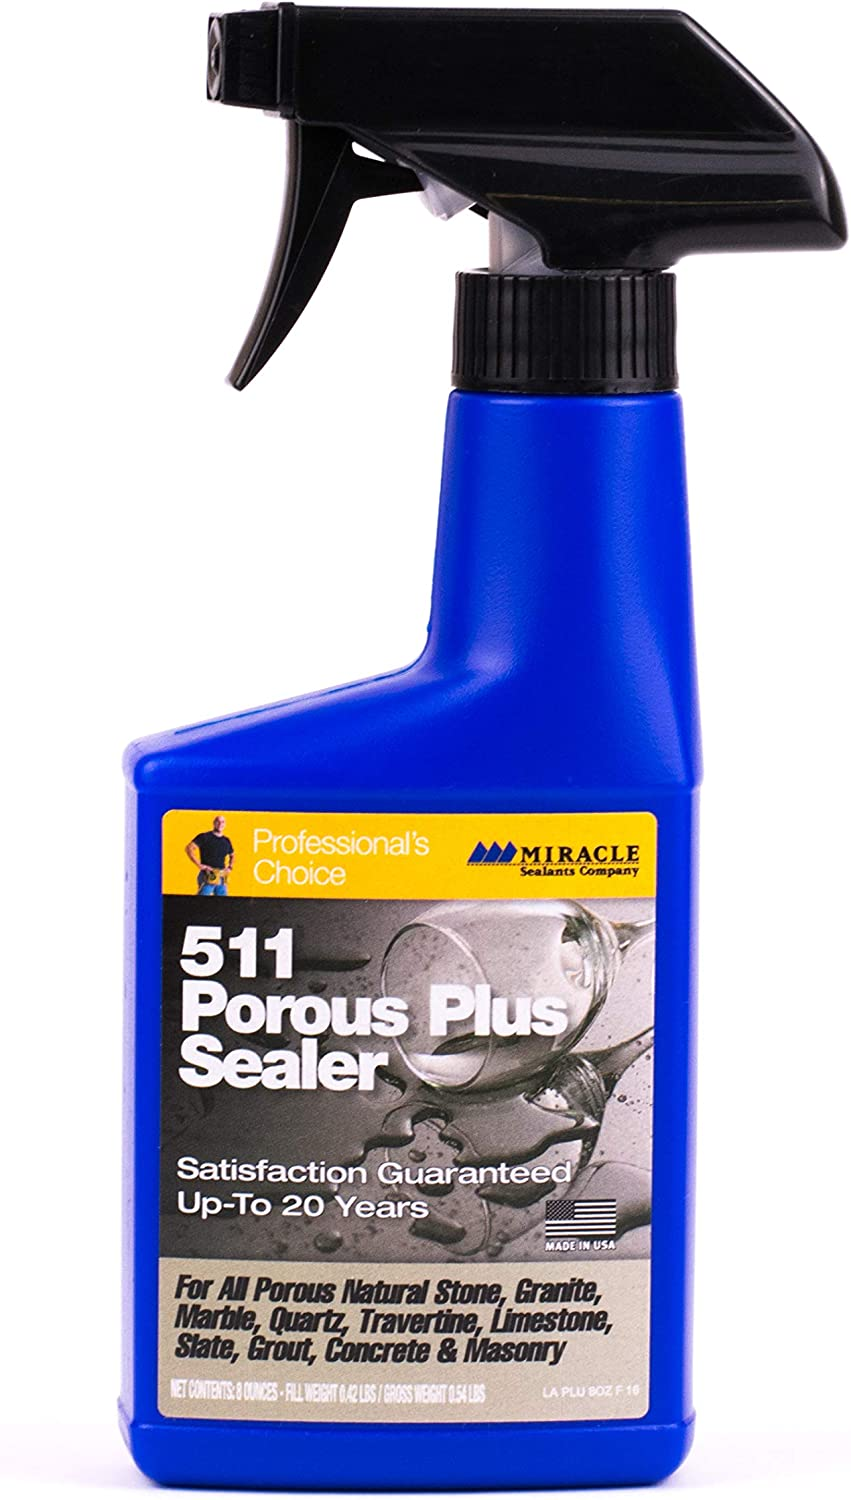 Miracle Sealants 511 Porous Plus 237ml spray (US 8oz) The Best Performing Penetrating Sealer on the Planet by Miracle Sealants